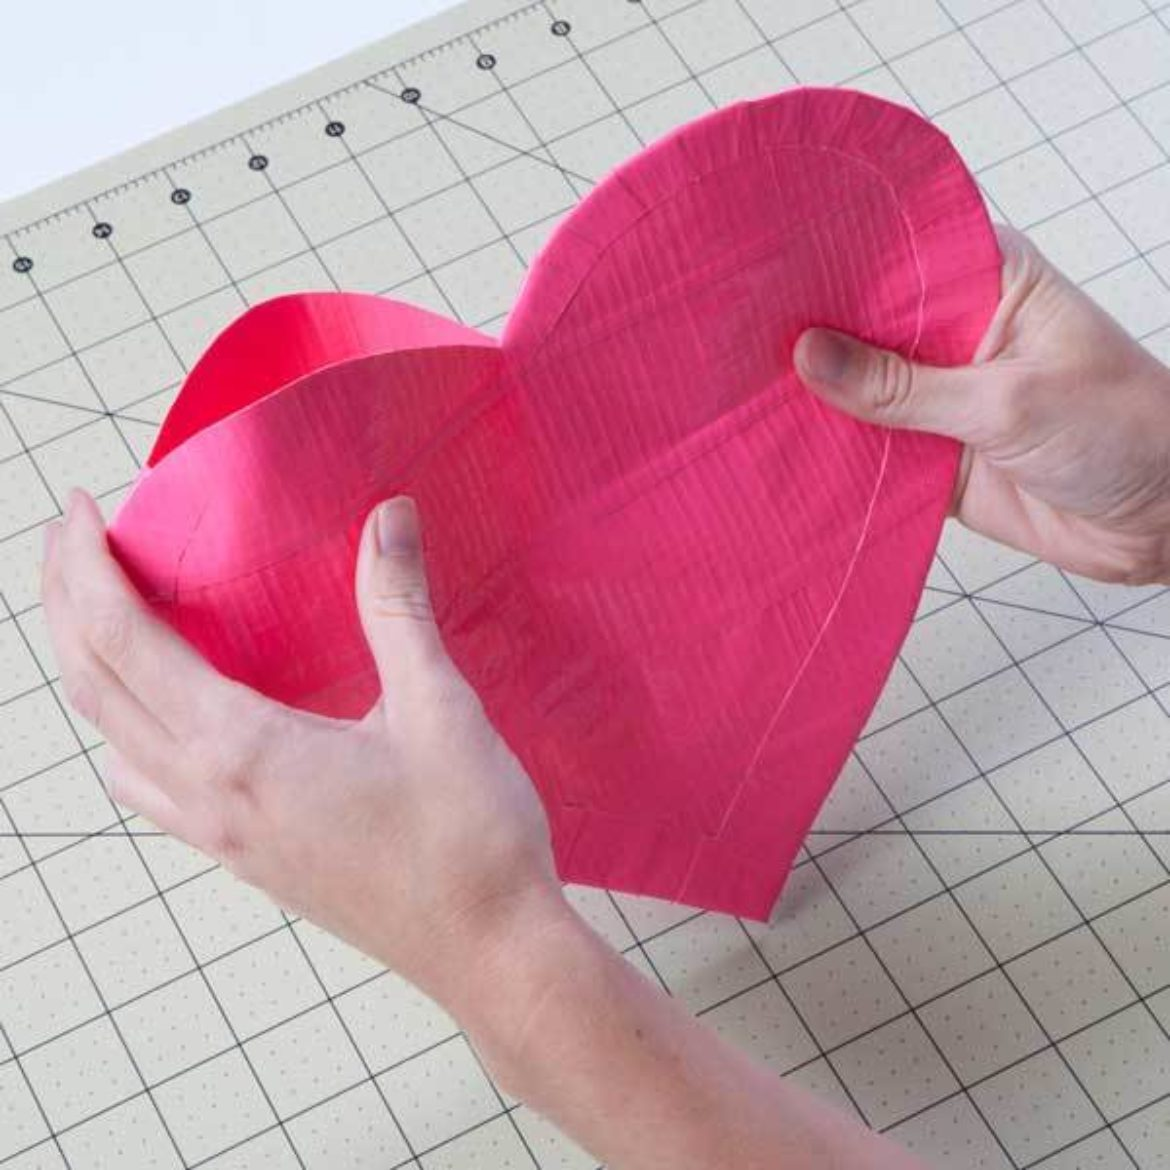 the two heart shapes from the previous steps taped together almost all the way around